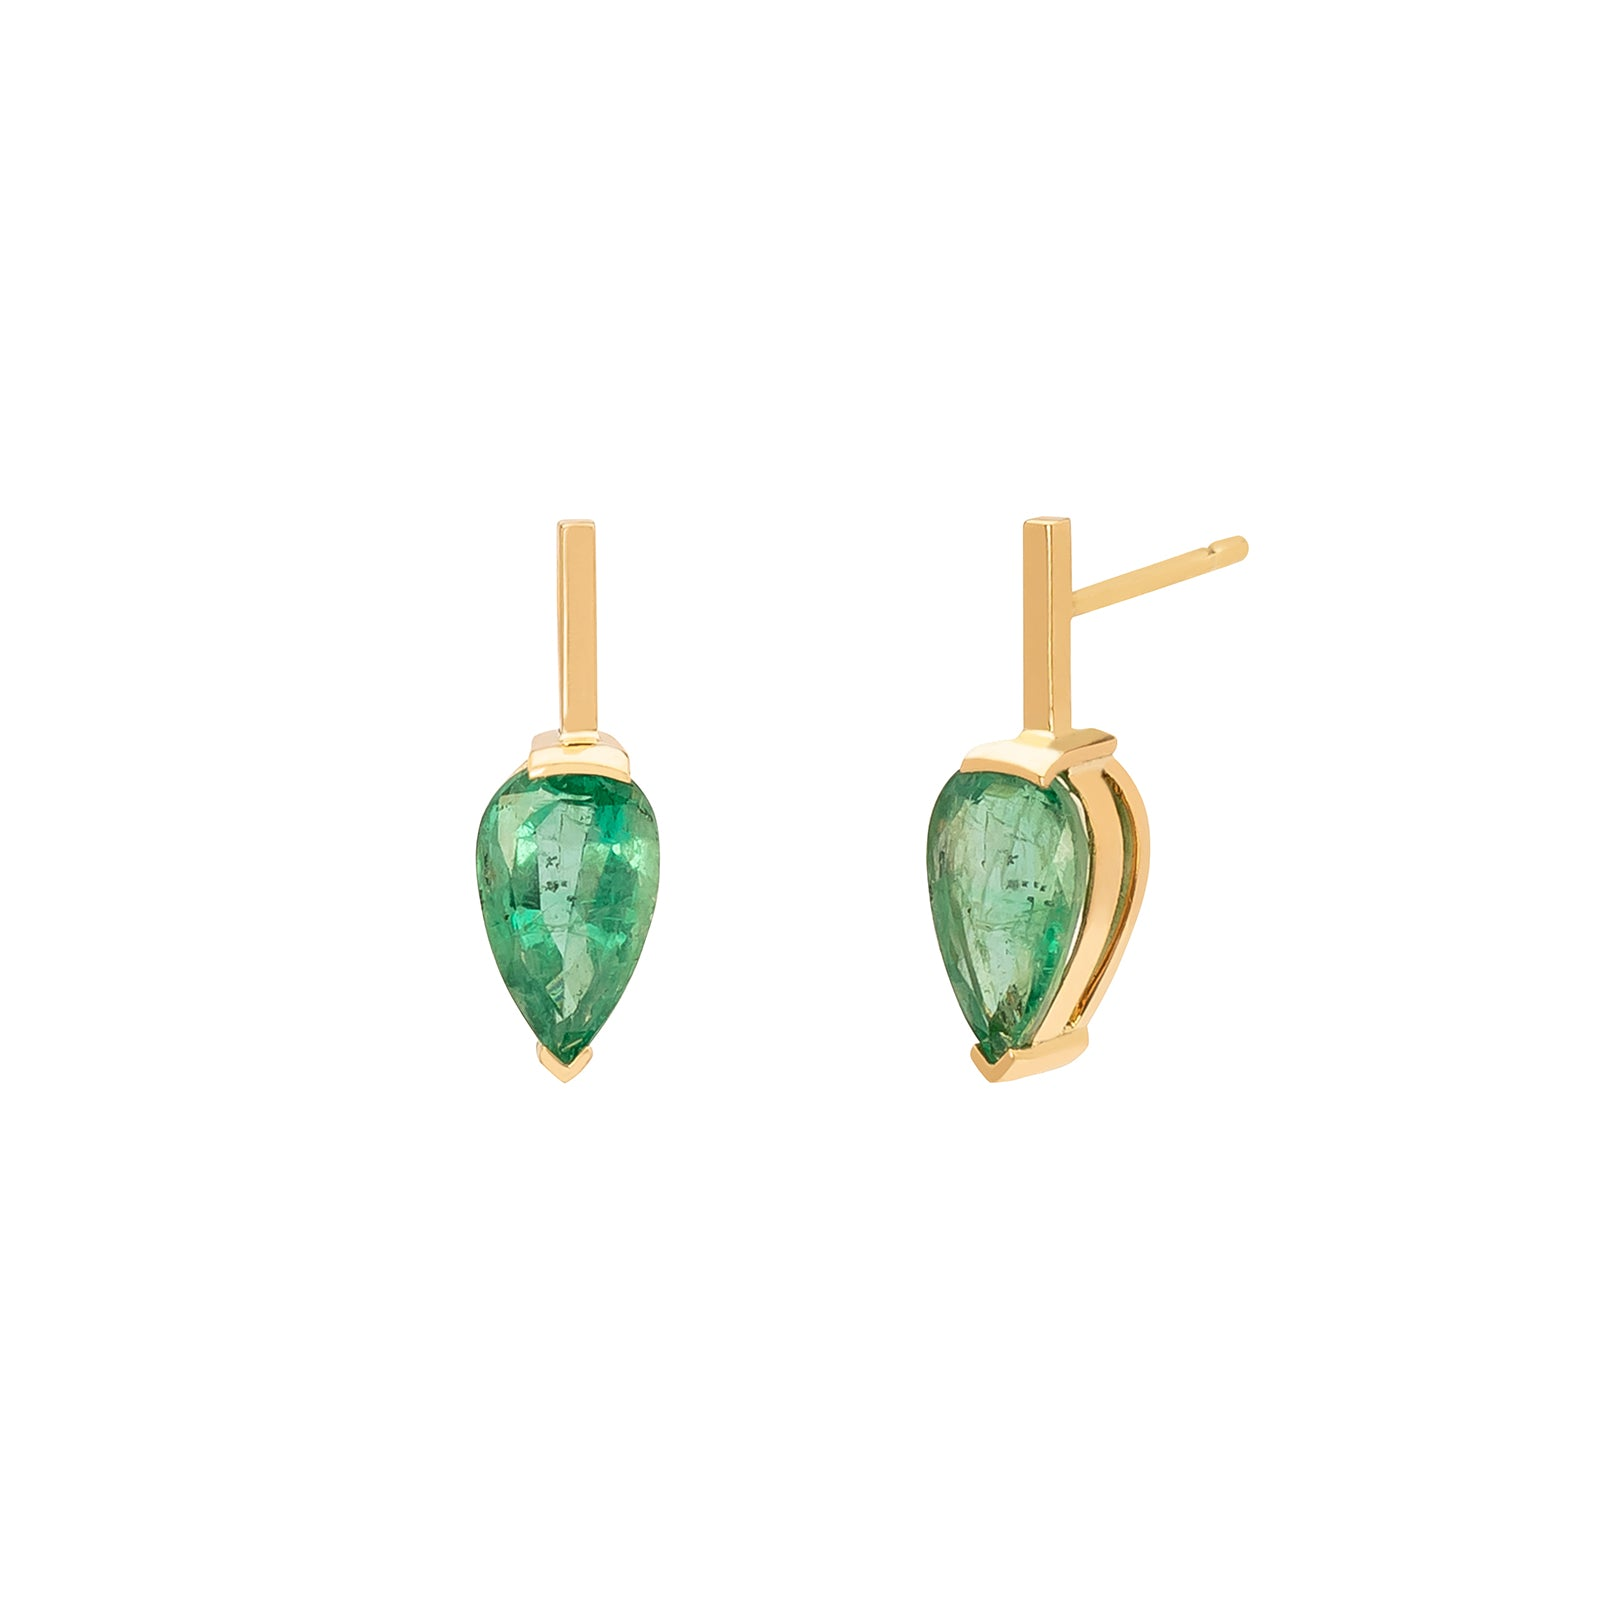 YI Collection Dewdrop Earrings - Emerald - Earrings - Broken English Jewelry